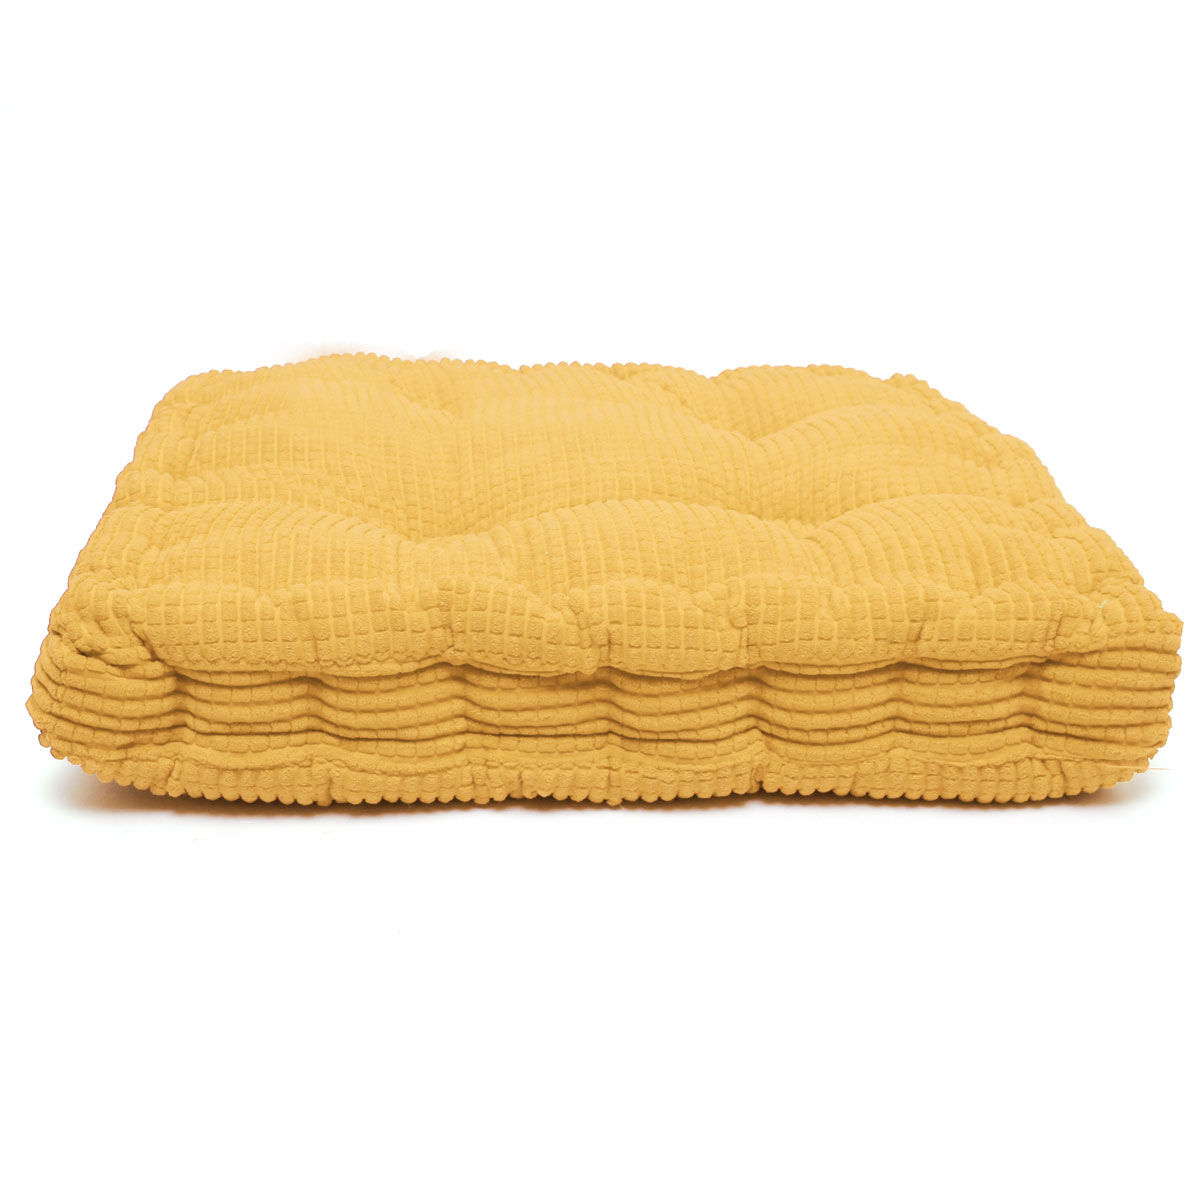 thick chair cushions mats for carpeted floors adult chunky garden dining armchair booster cotton